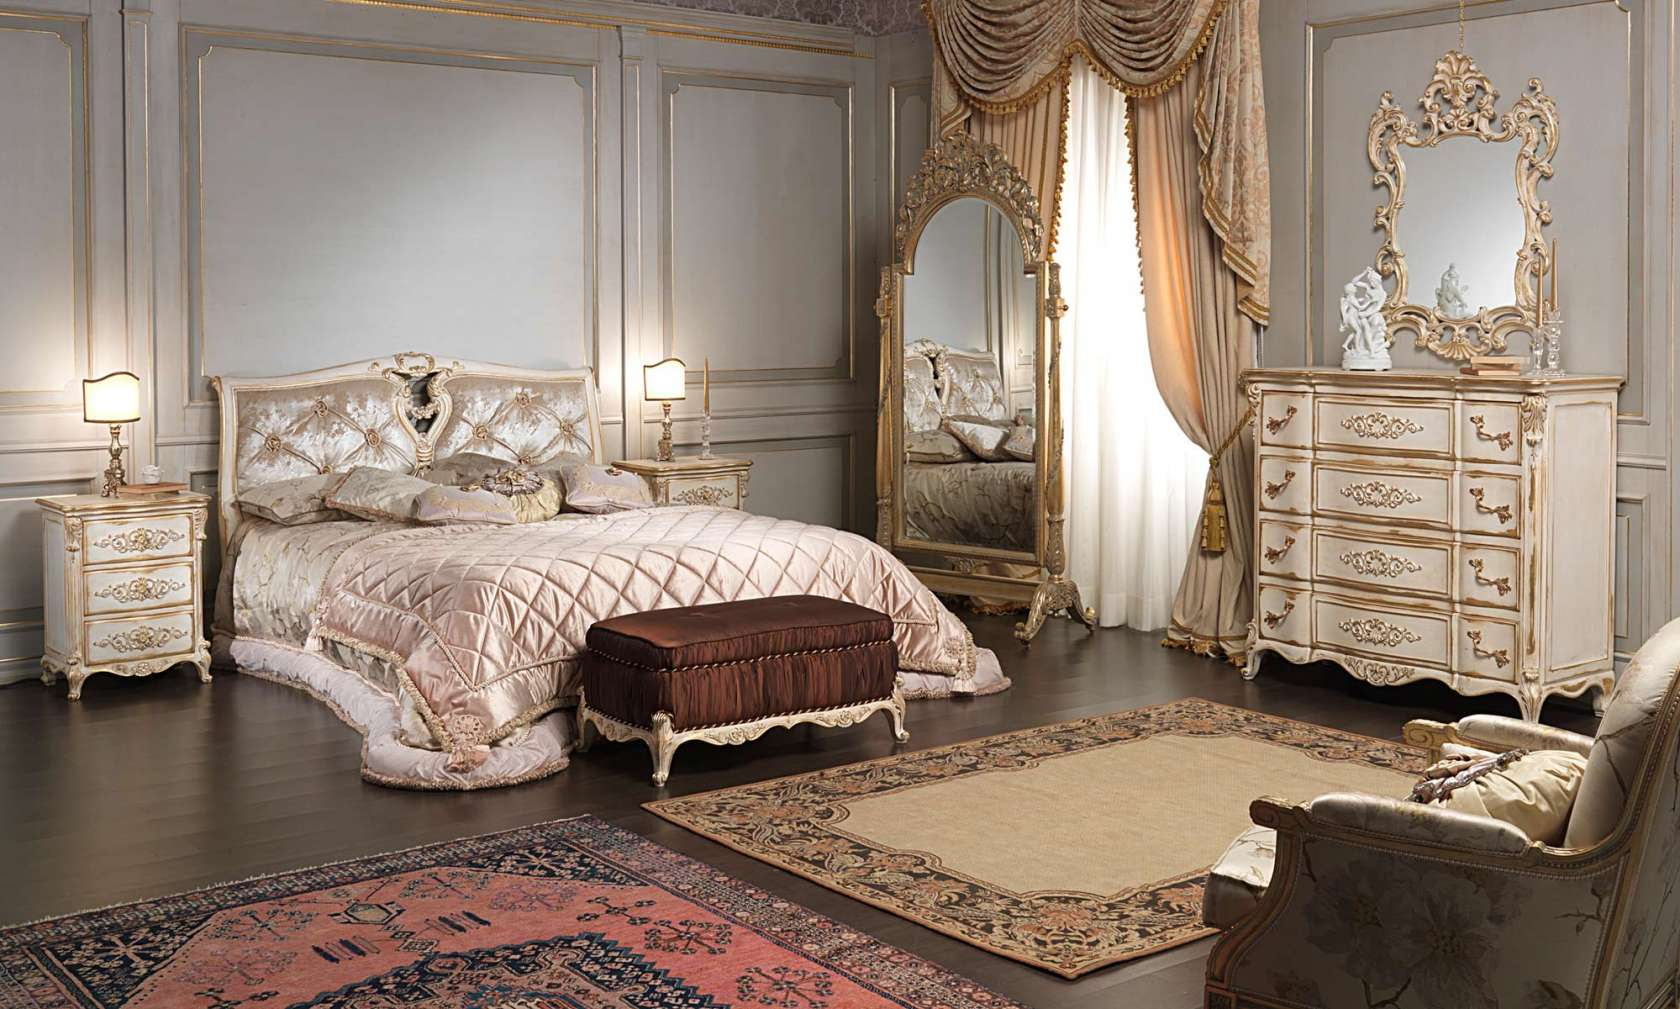 Louis xvi bedroom furniture - Classic Louis Xvi Bedroom